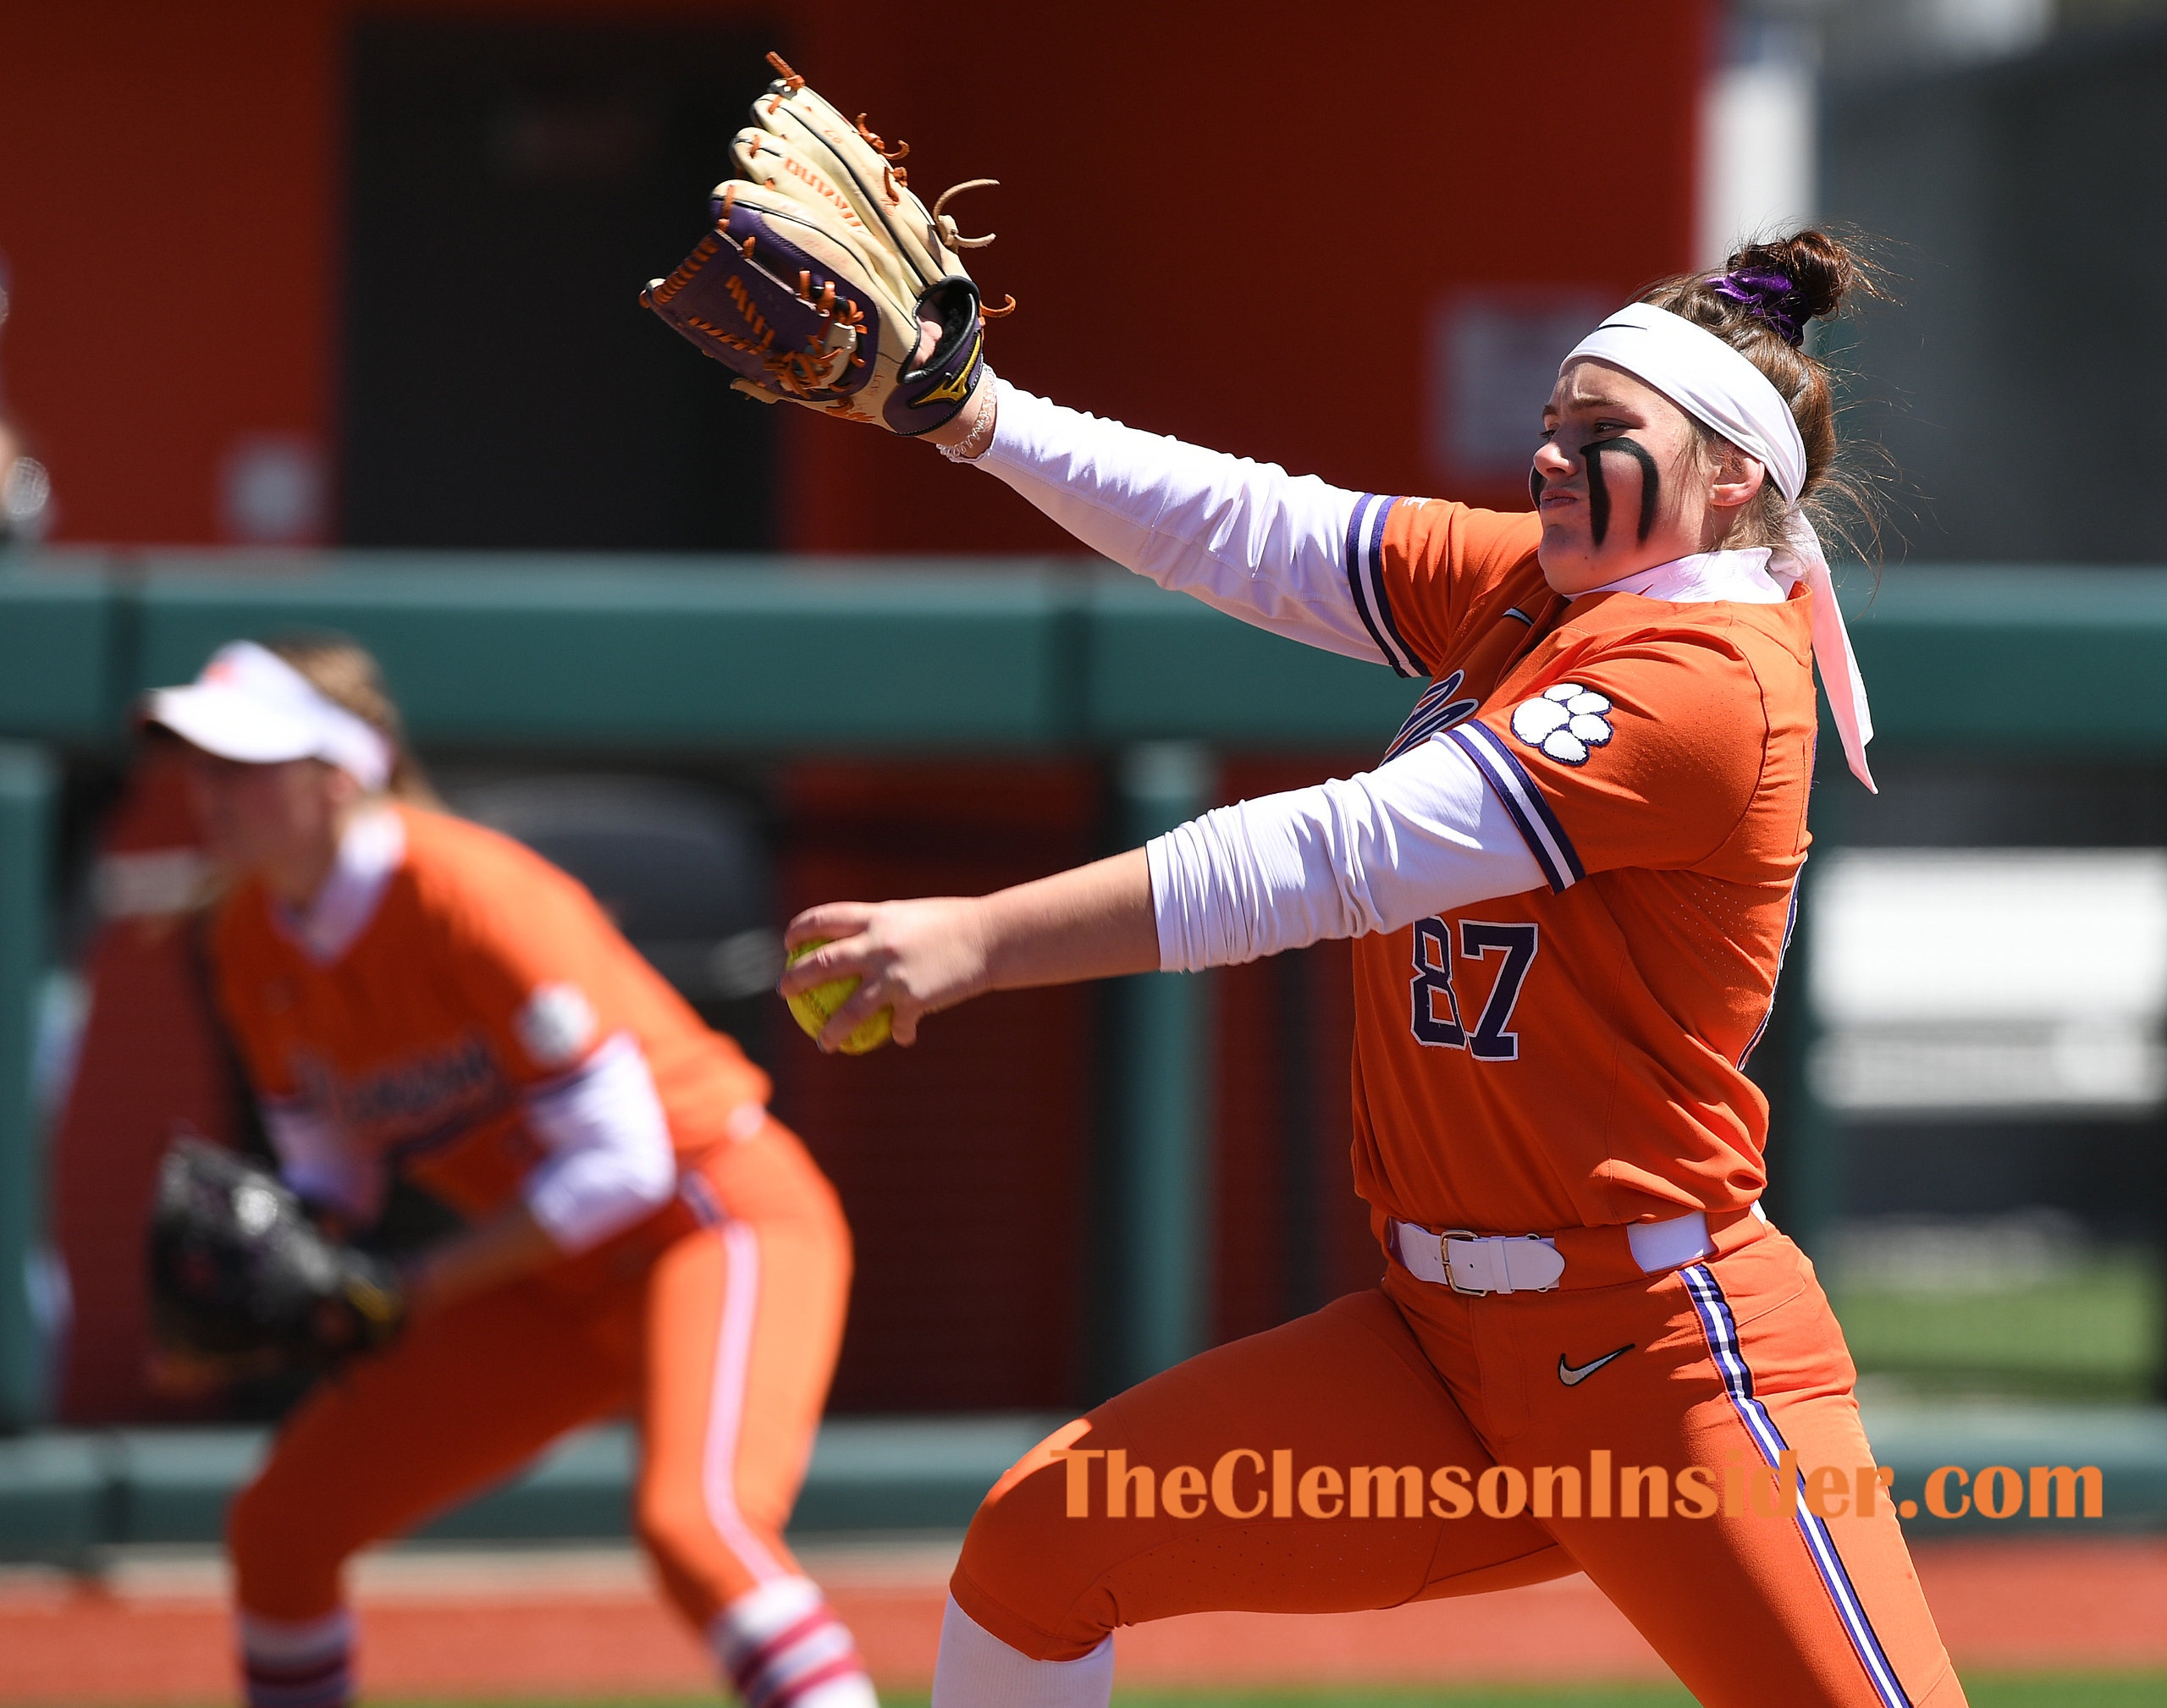 Clemson pitcher Millie Thompson (87) pitches against North Carolina Friday, April 2, 2021 at Clemson's McWhorter Stadium. Bart Boatwright/The Clemson Insider